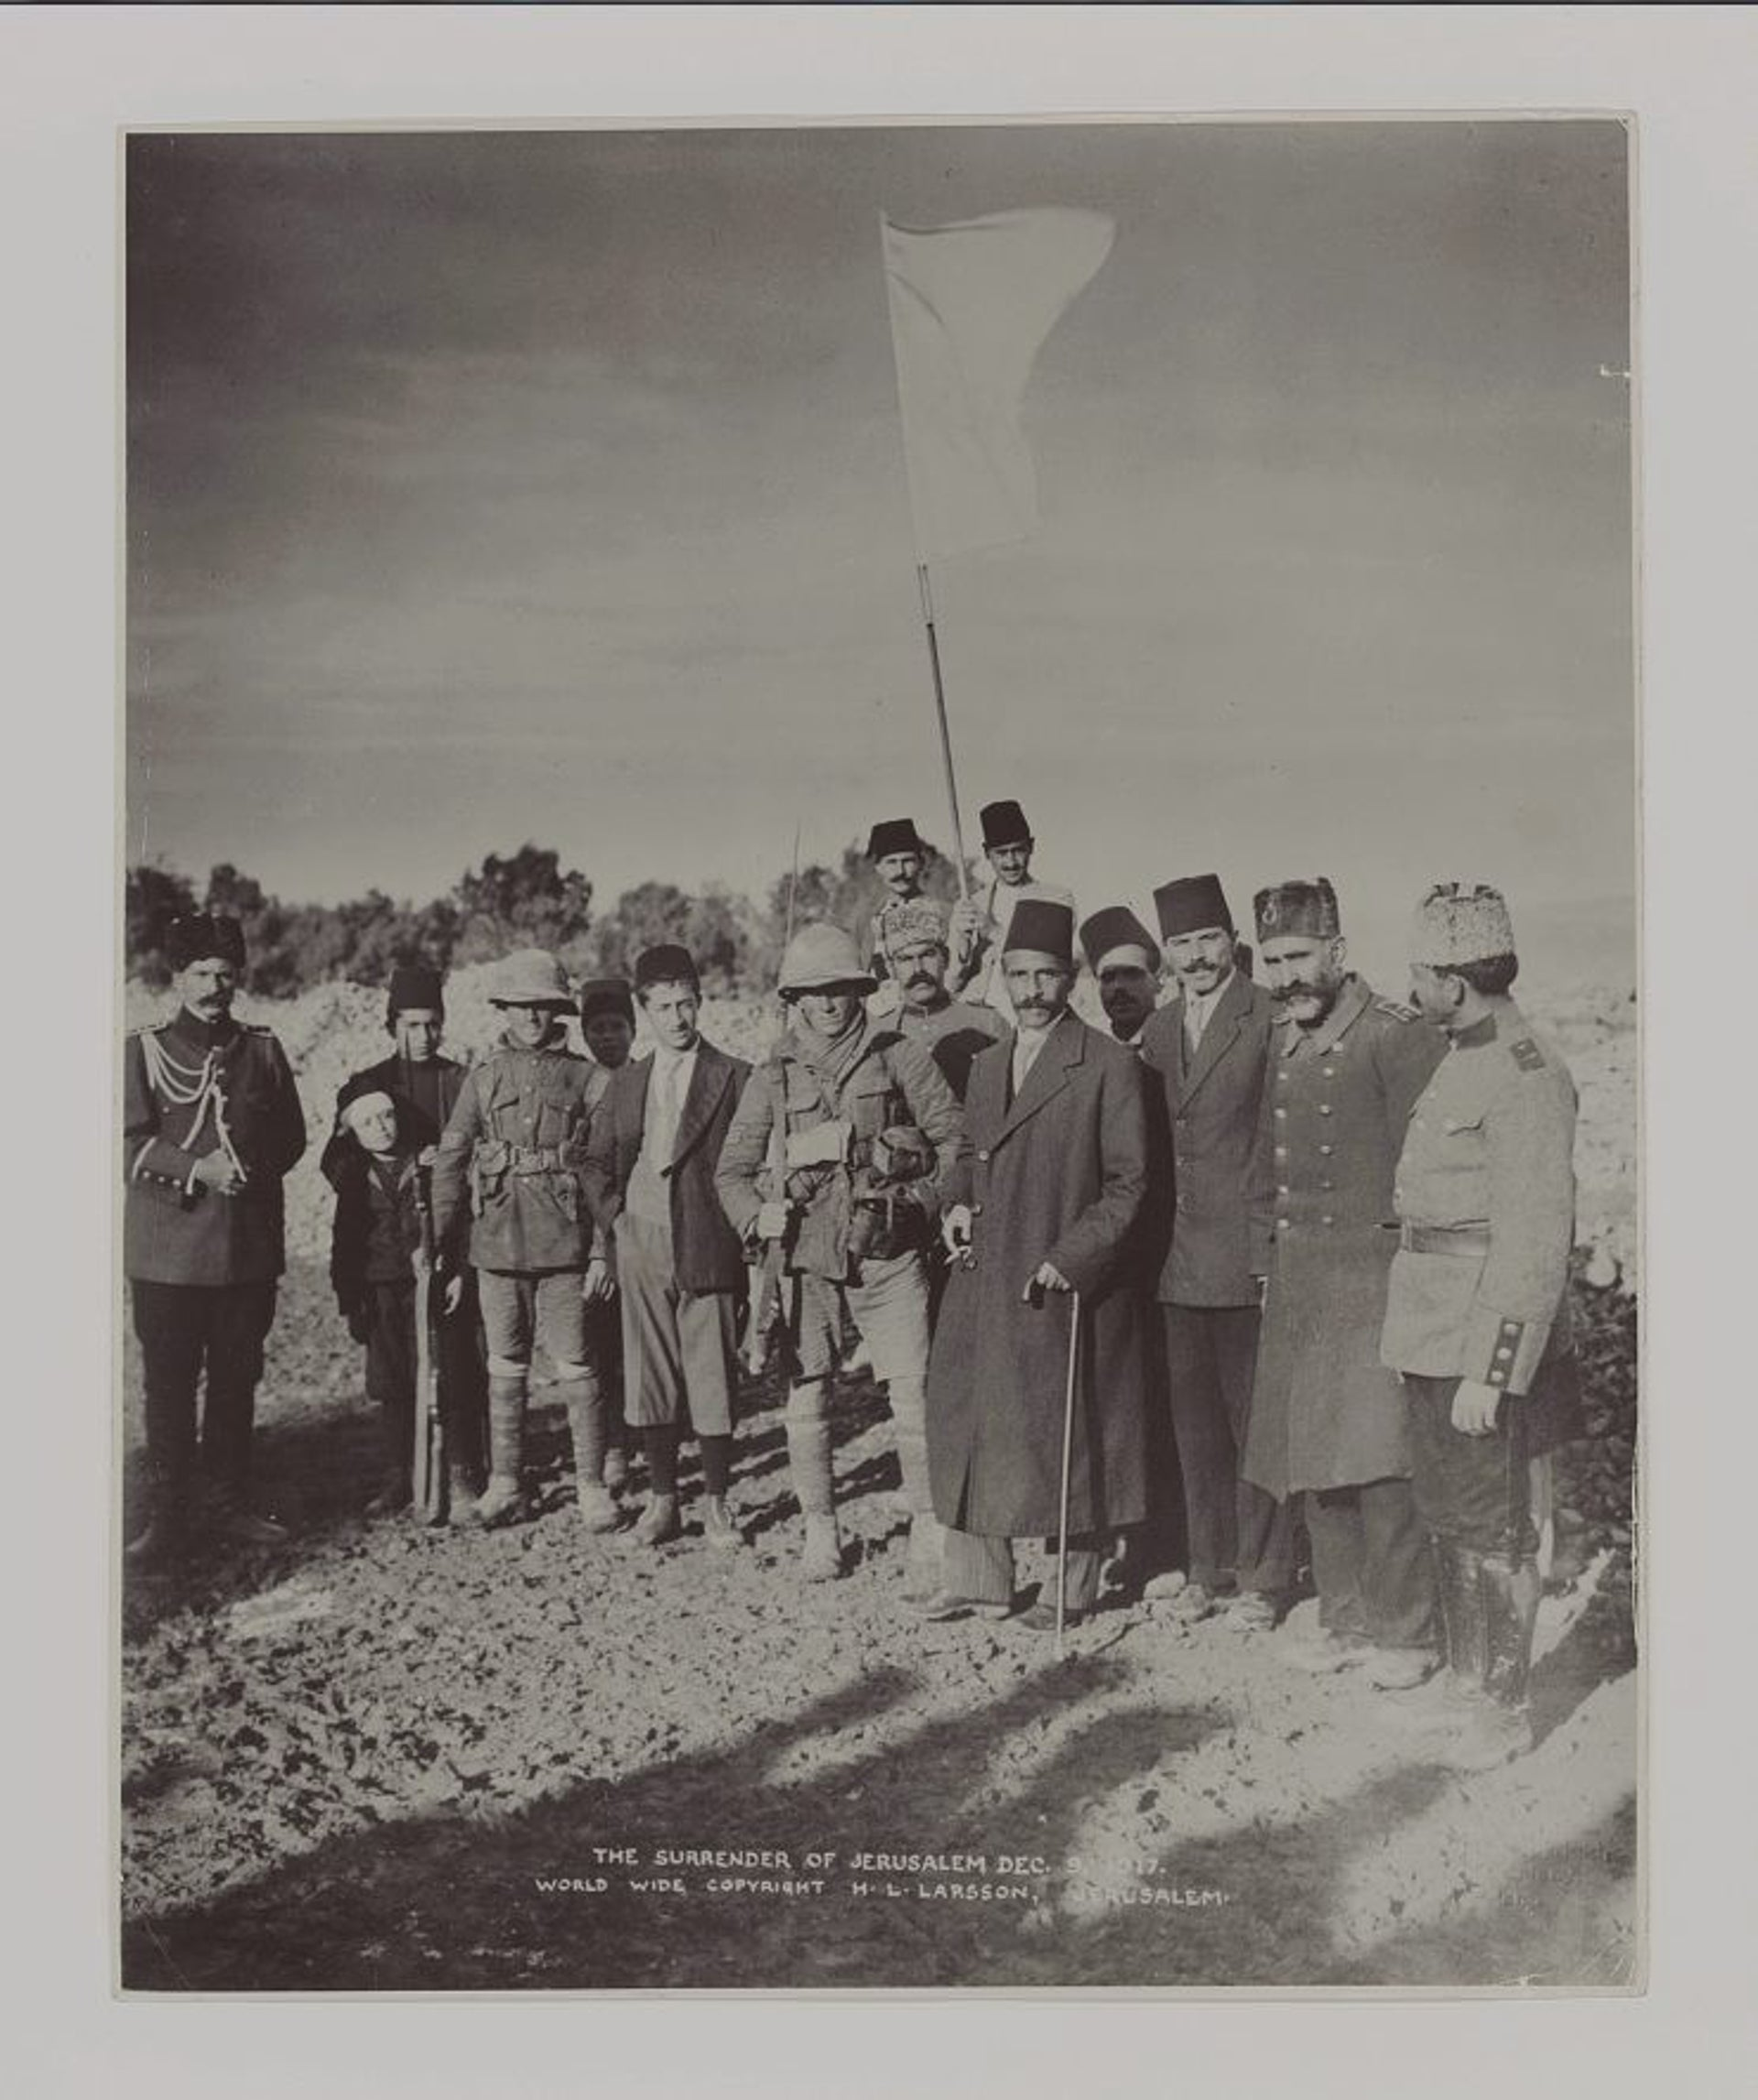 The mayor of Jerusalem, Hussein al-Husseini, meets with British sergeants James S. Sedgewick and Frederick H. Hurcomb with the white flag of surrender,  December 9, 1917.